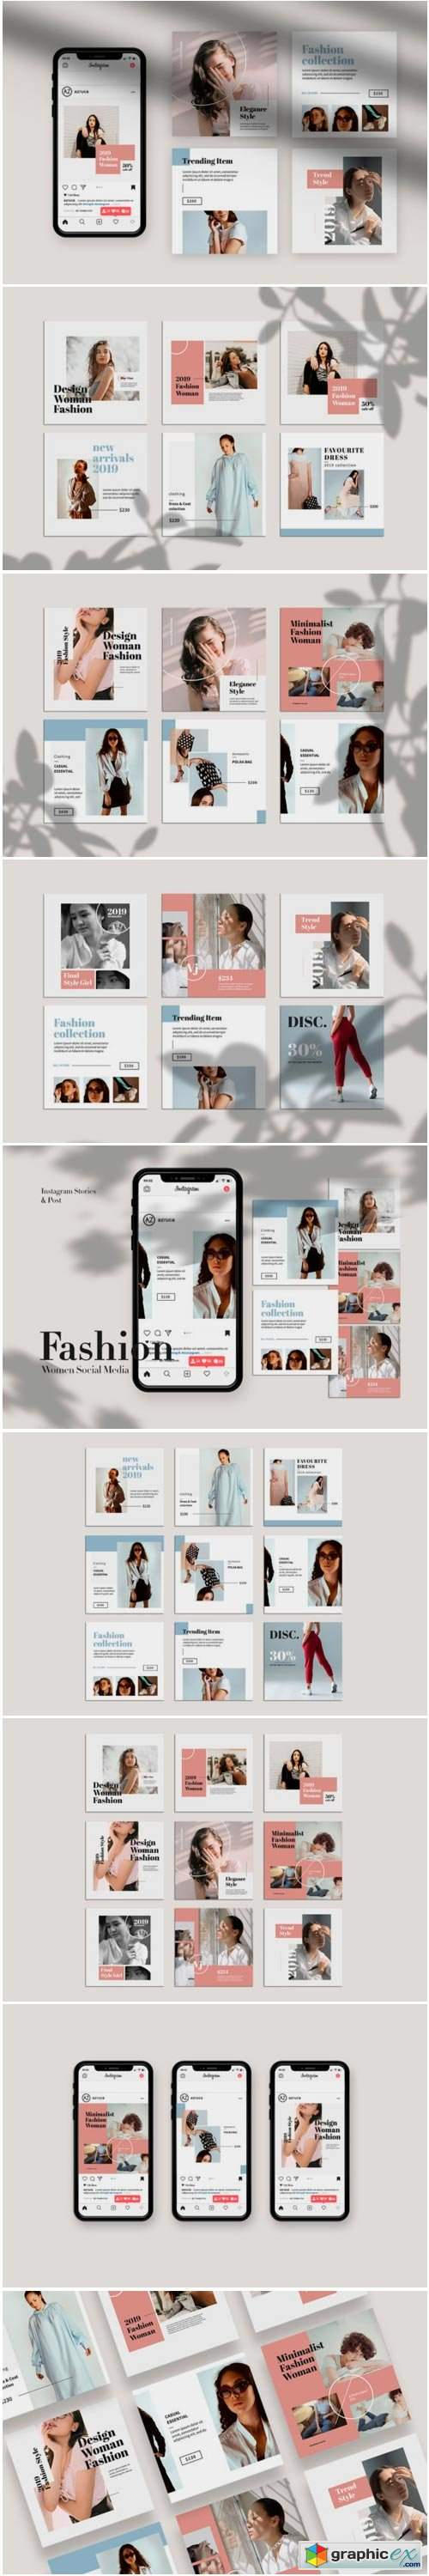 Fashion Instagram Templates 1766744